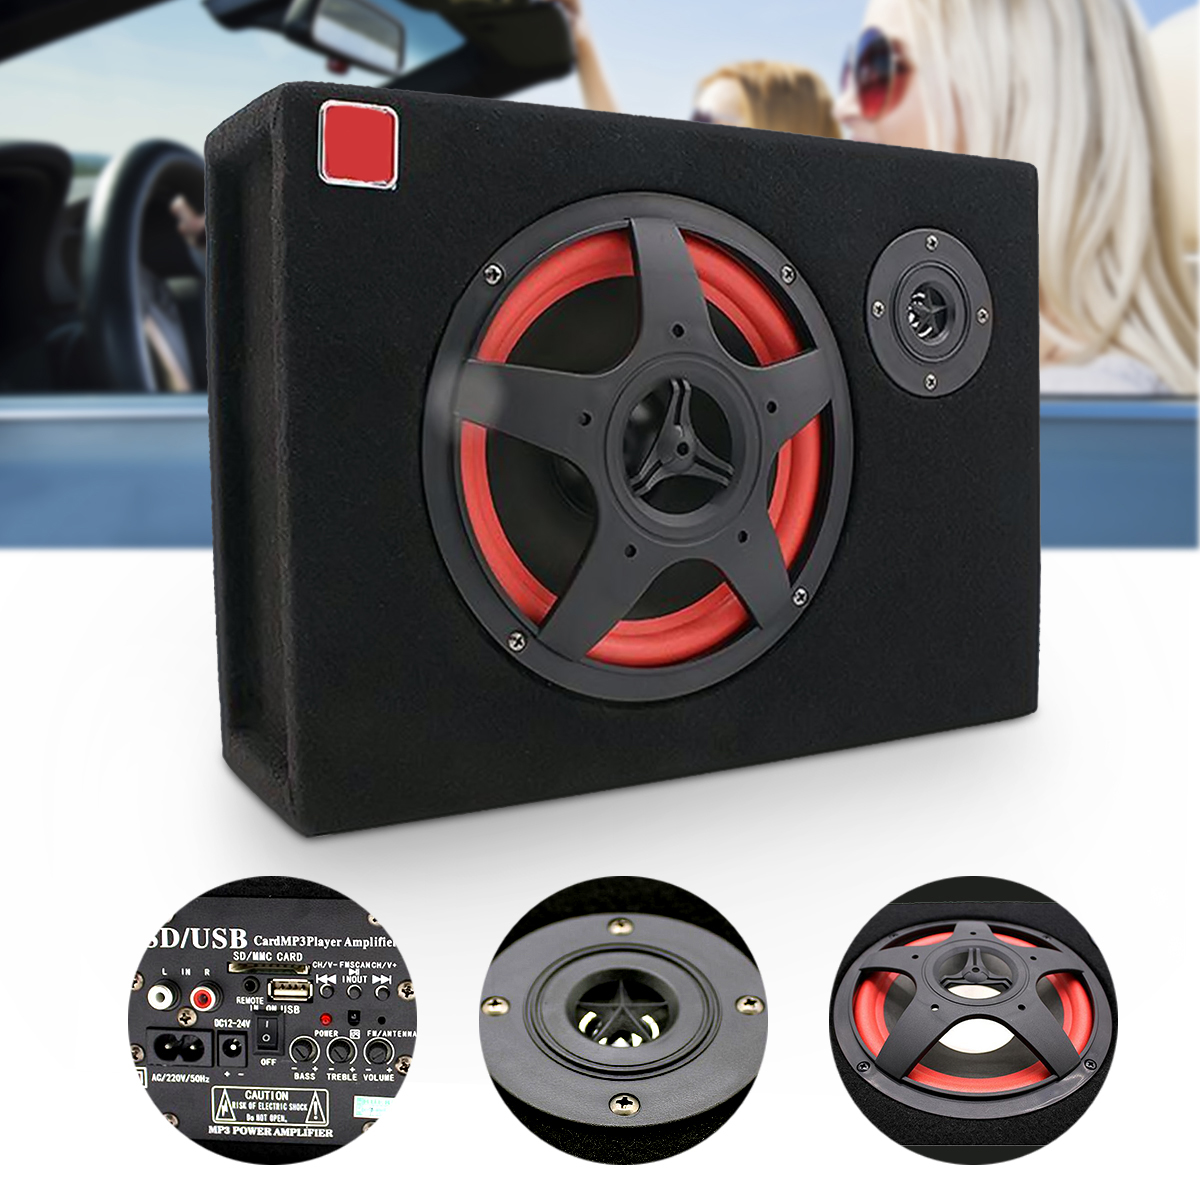 8 inch bluetooth car home subwoofer under seat sub 600w stereo subwoofer car audio speaker music system sound woofer 350W Speaker Audio Stereo Bass Under Seat Active Car Subwoofer Powerful 4oHm 6 inch Card Car Seat Power Car 12V 24V 220V Speaker